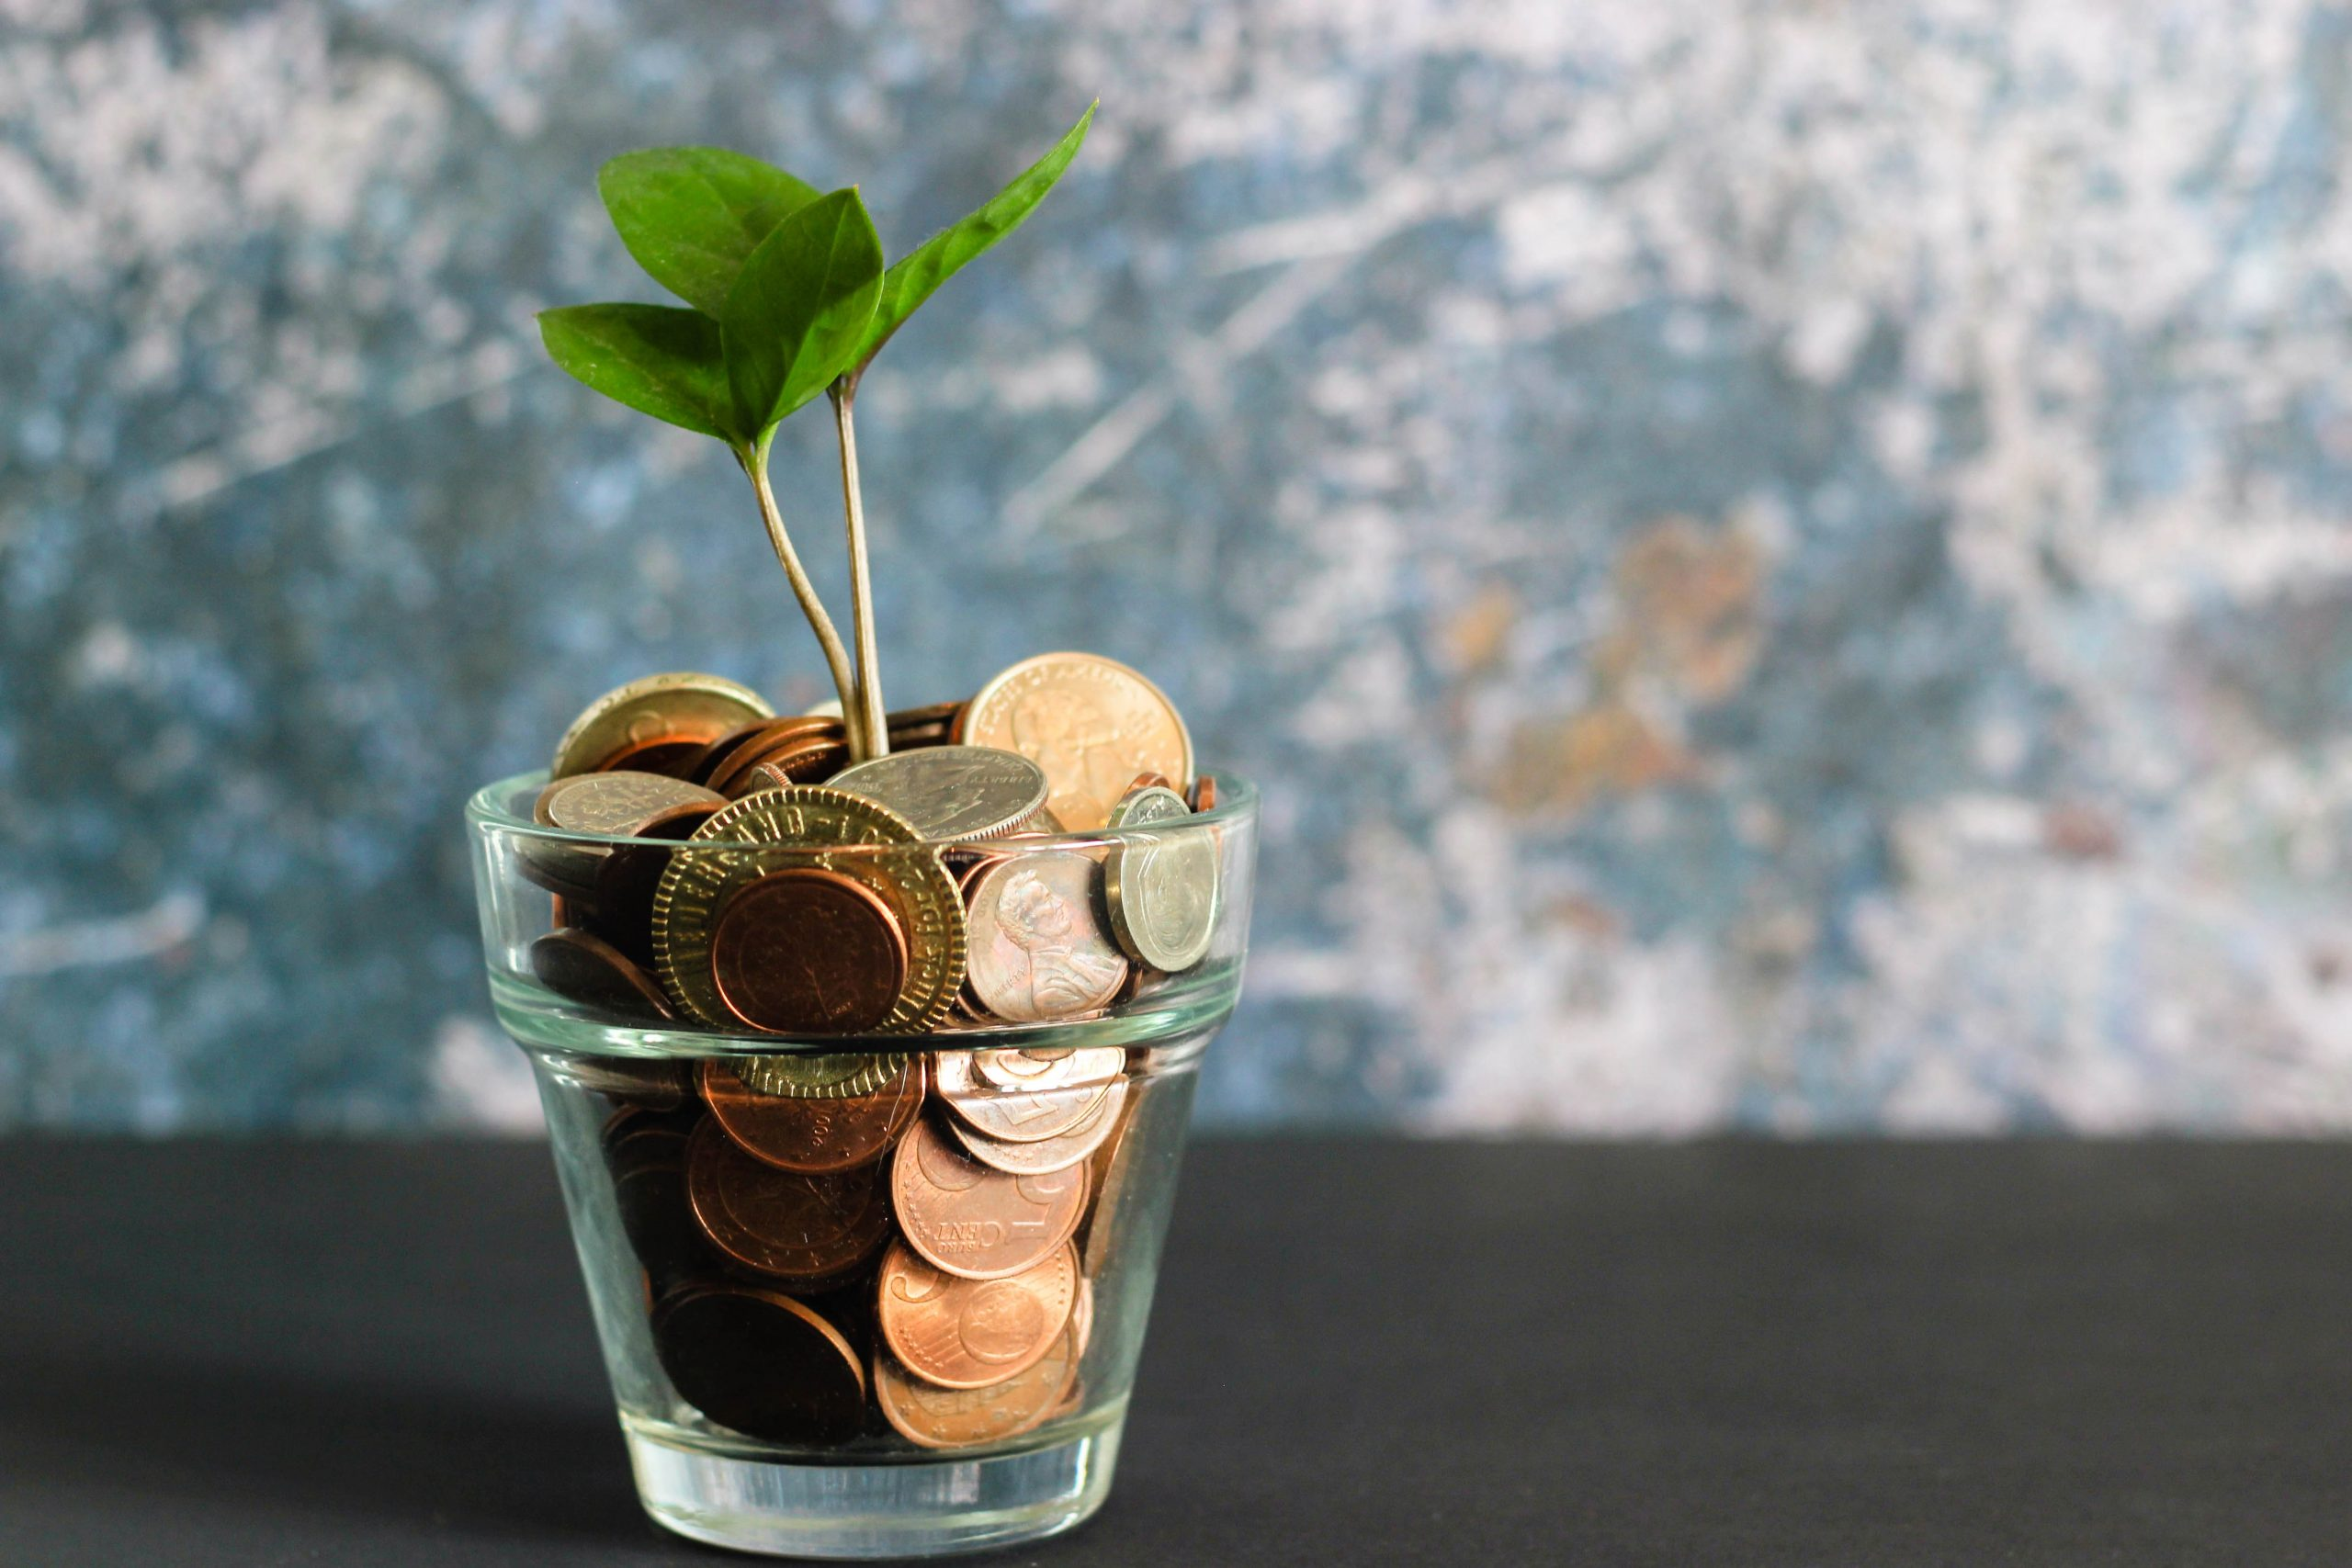 Glass flower pot filled with coins and a little sprout coming through the top